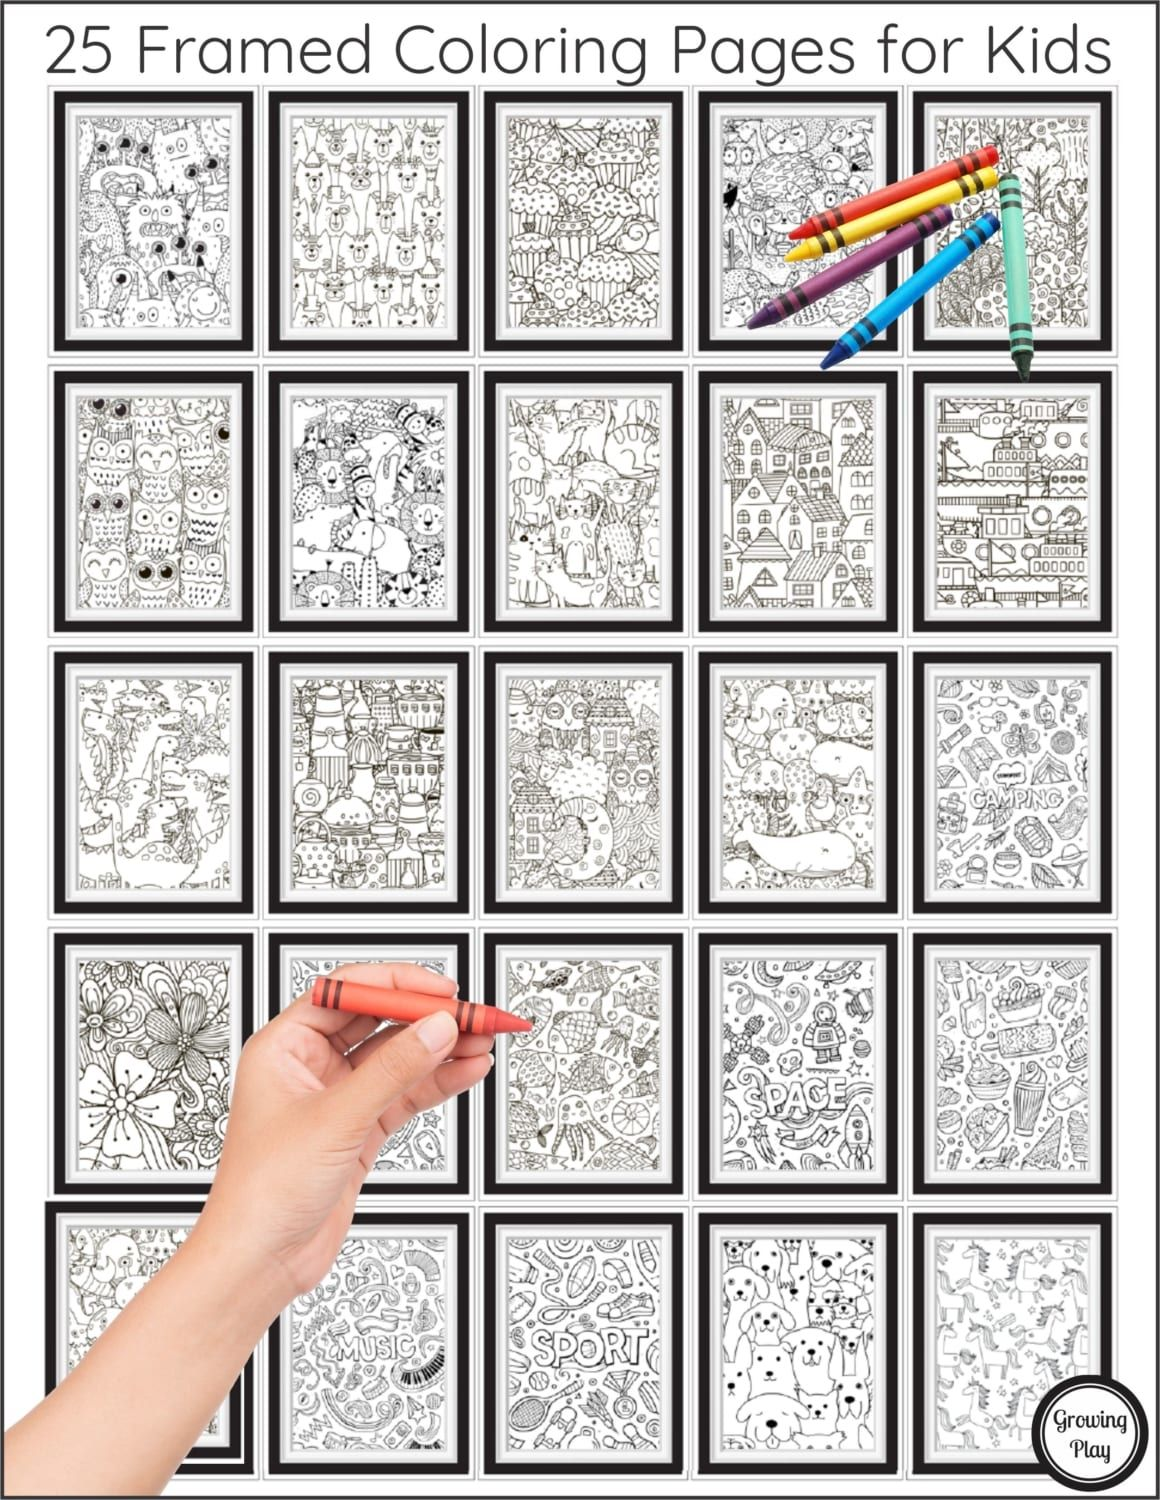 Framed Coloring Pages For Kids Growing Play Coloring Pages For Kids Coloring Pages Color